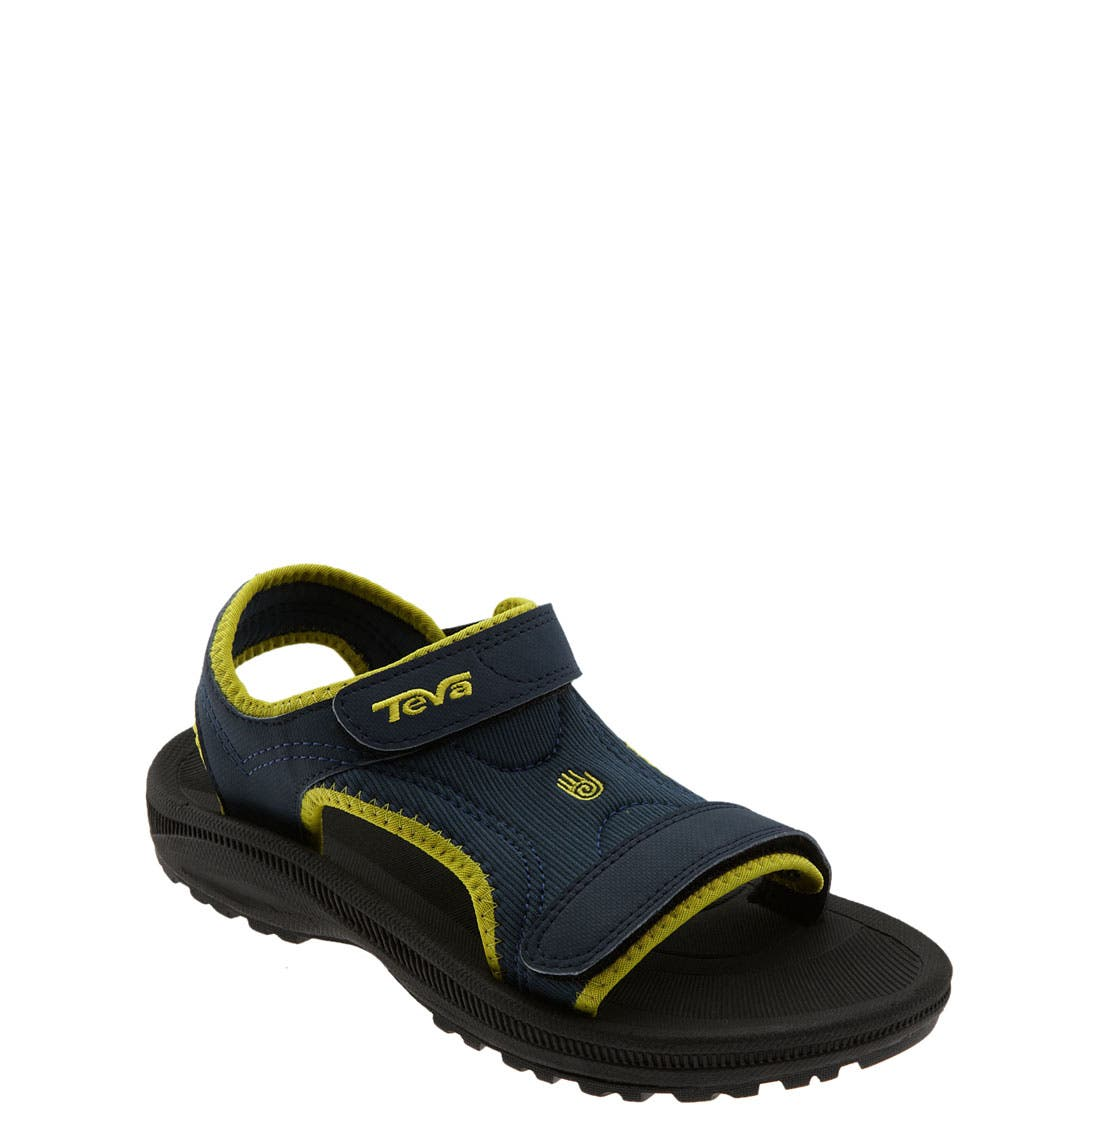 Alternate Image 1 Selected - Teva 'Psyclone' Water Sandal (Toddler, Little Kid & Big Kid)